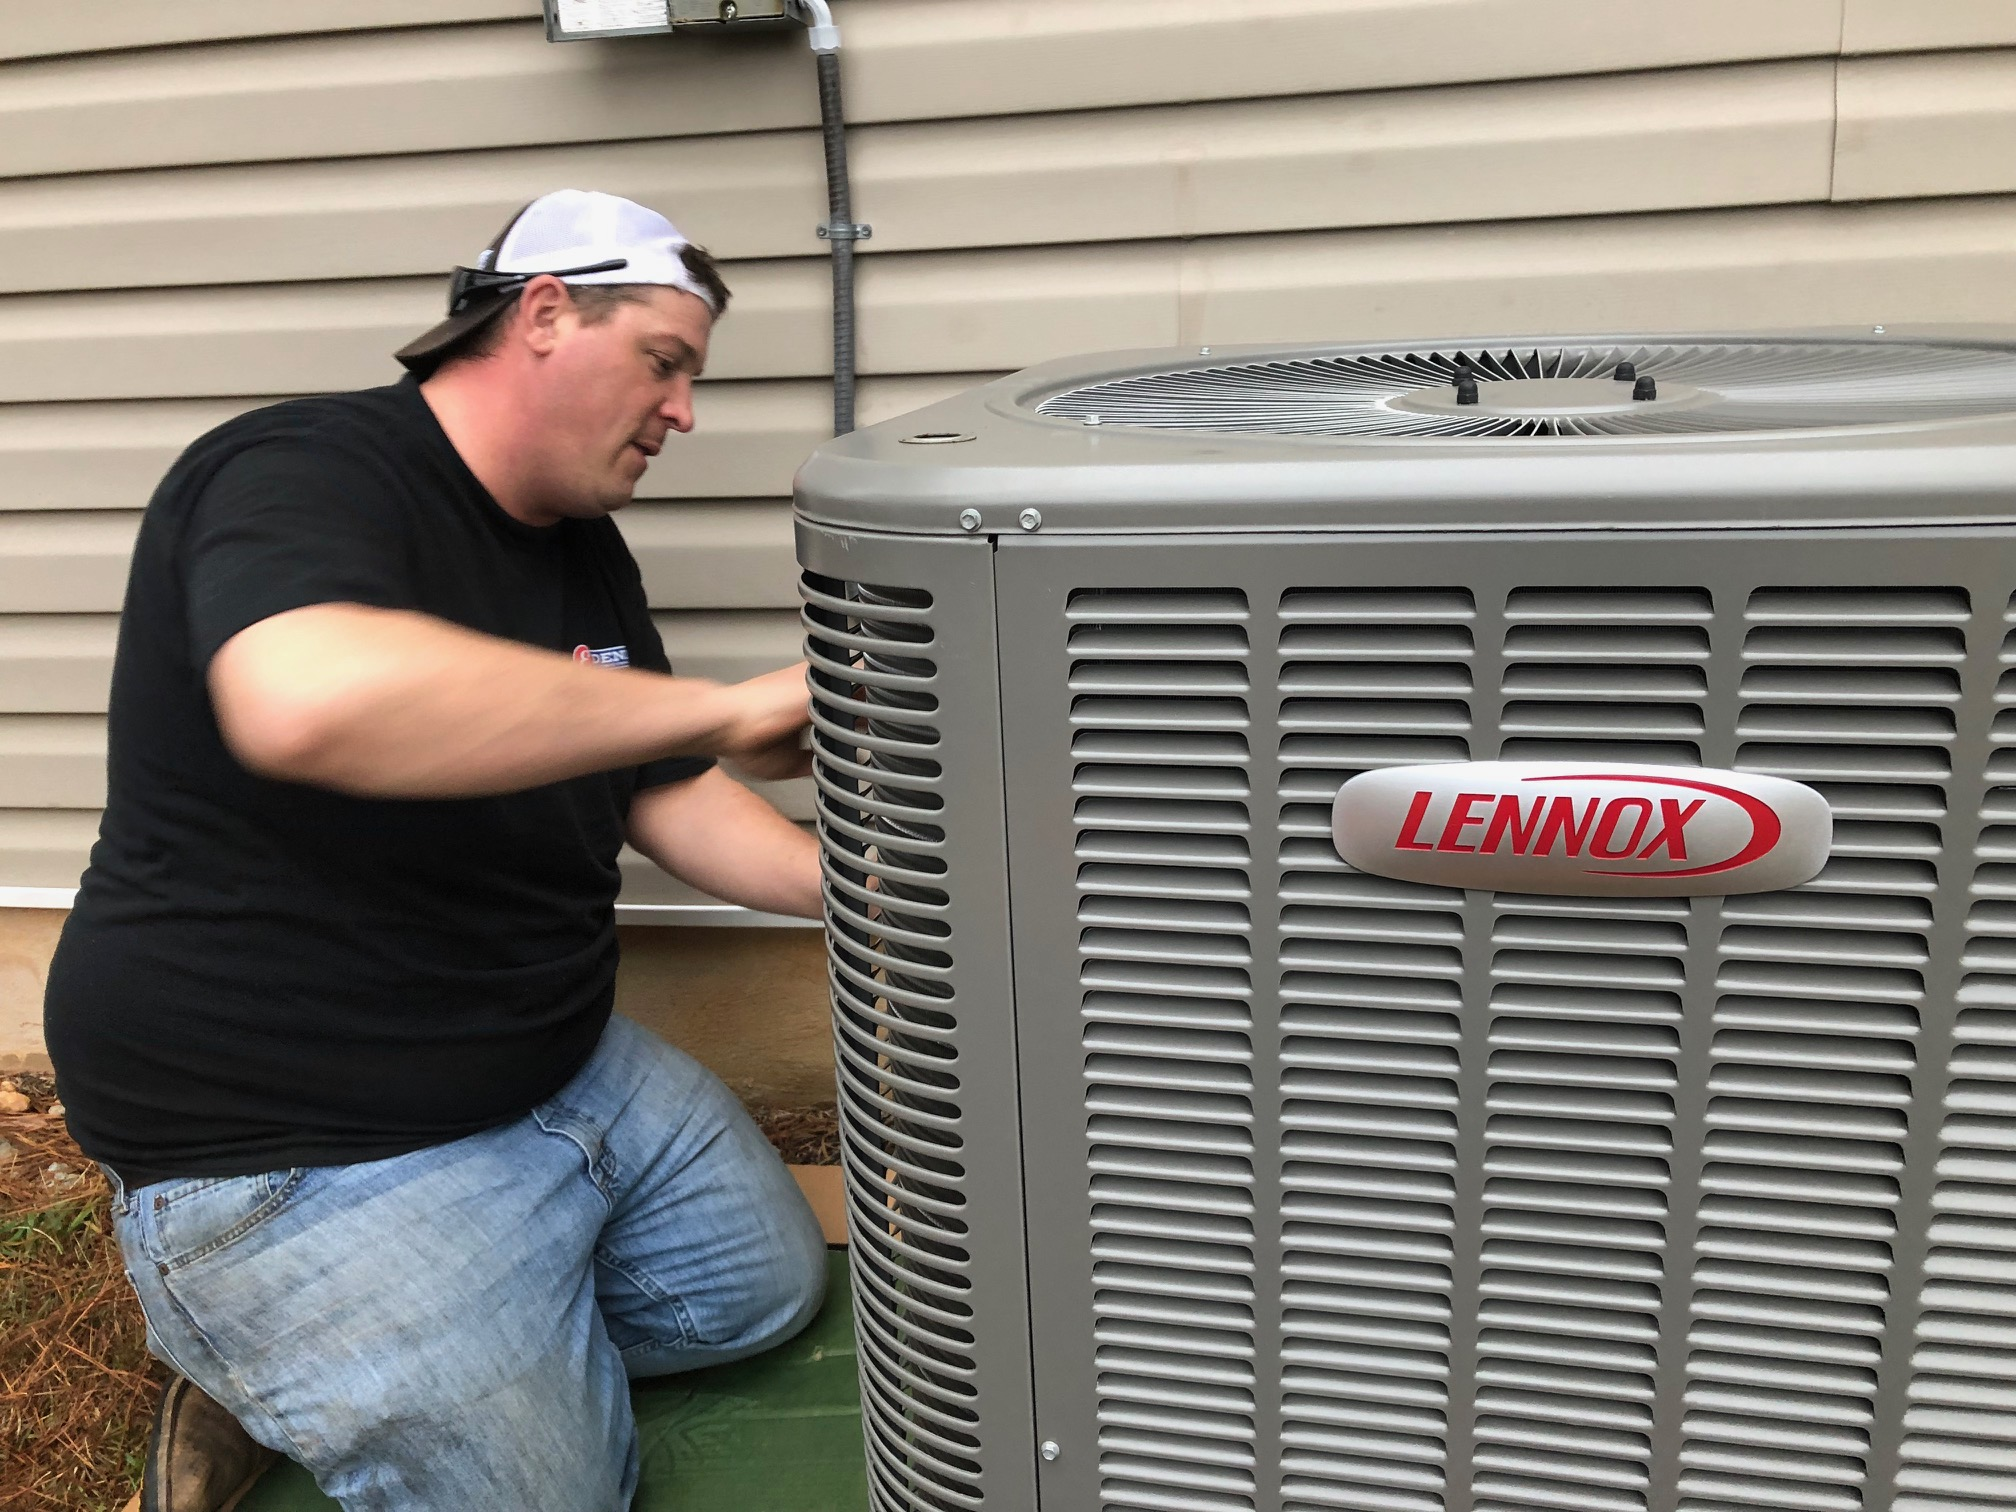 As A Homeowner It Can Be Easy To Overlook Certain Systems Throughout The Changing Seasons Heating And Air Conditioning Occasionally Get Neglected